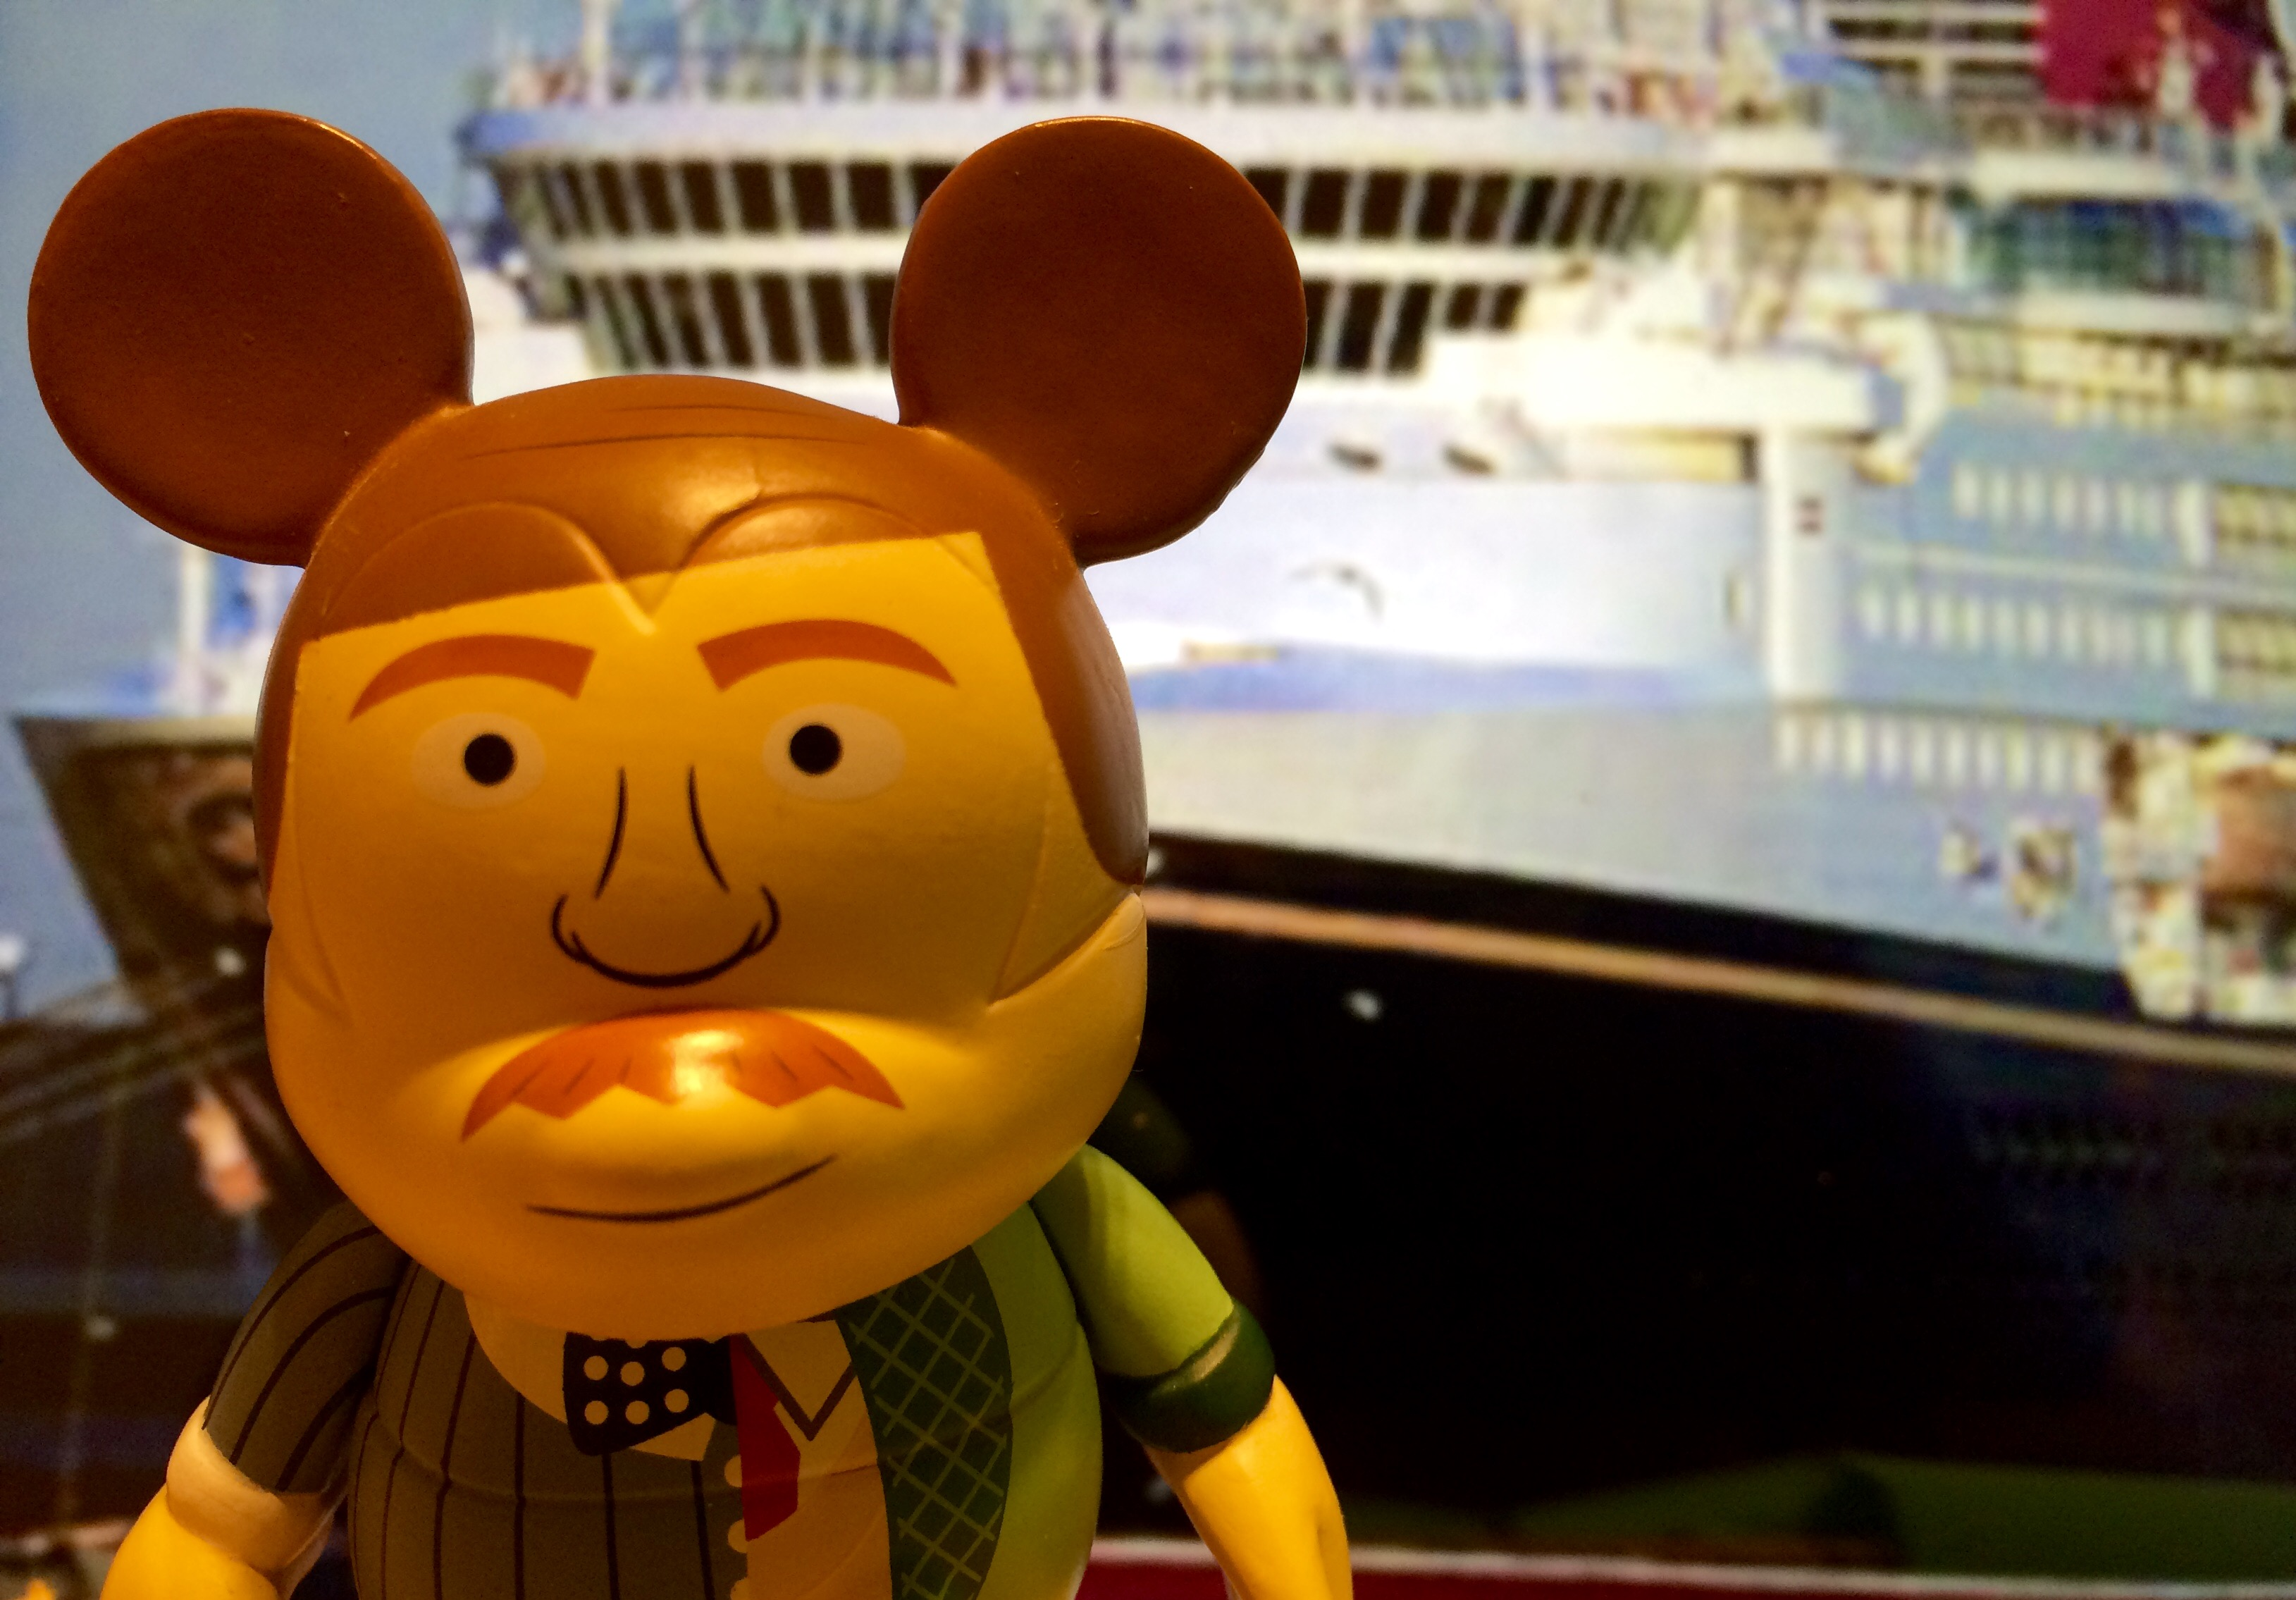 Vinylmation Vault: A Journey begins for Vinylmation Travel on Land and Sea